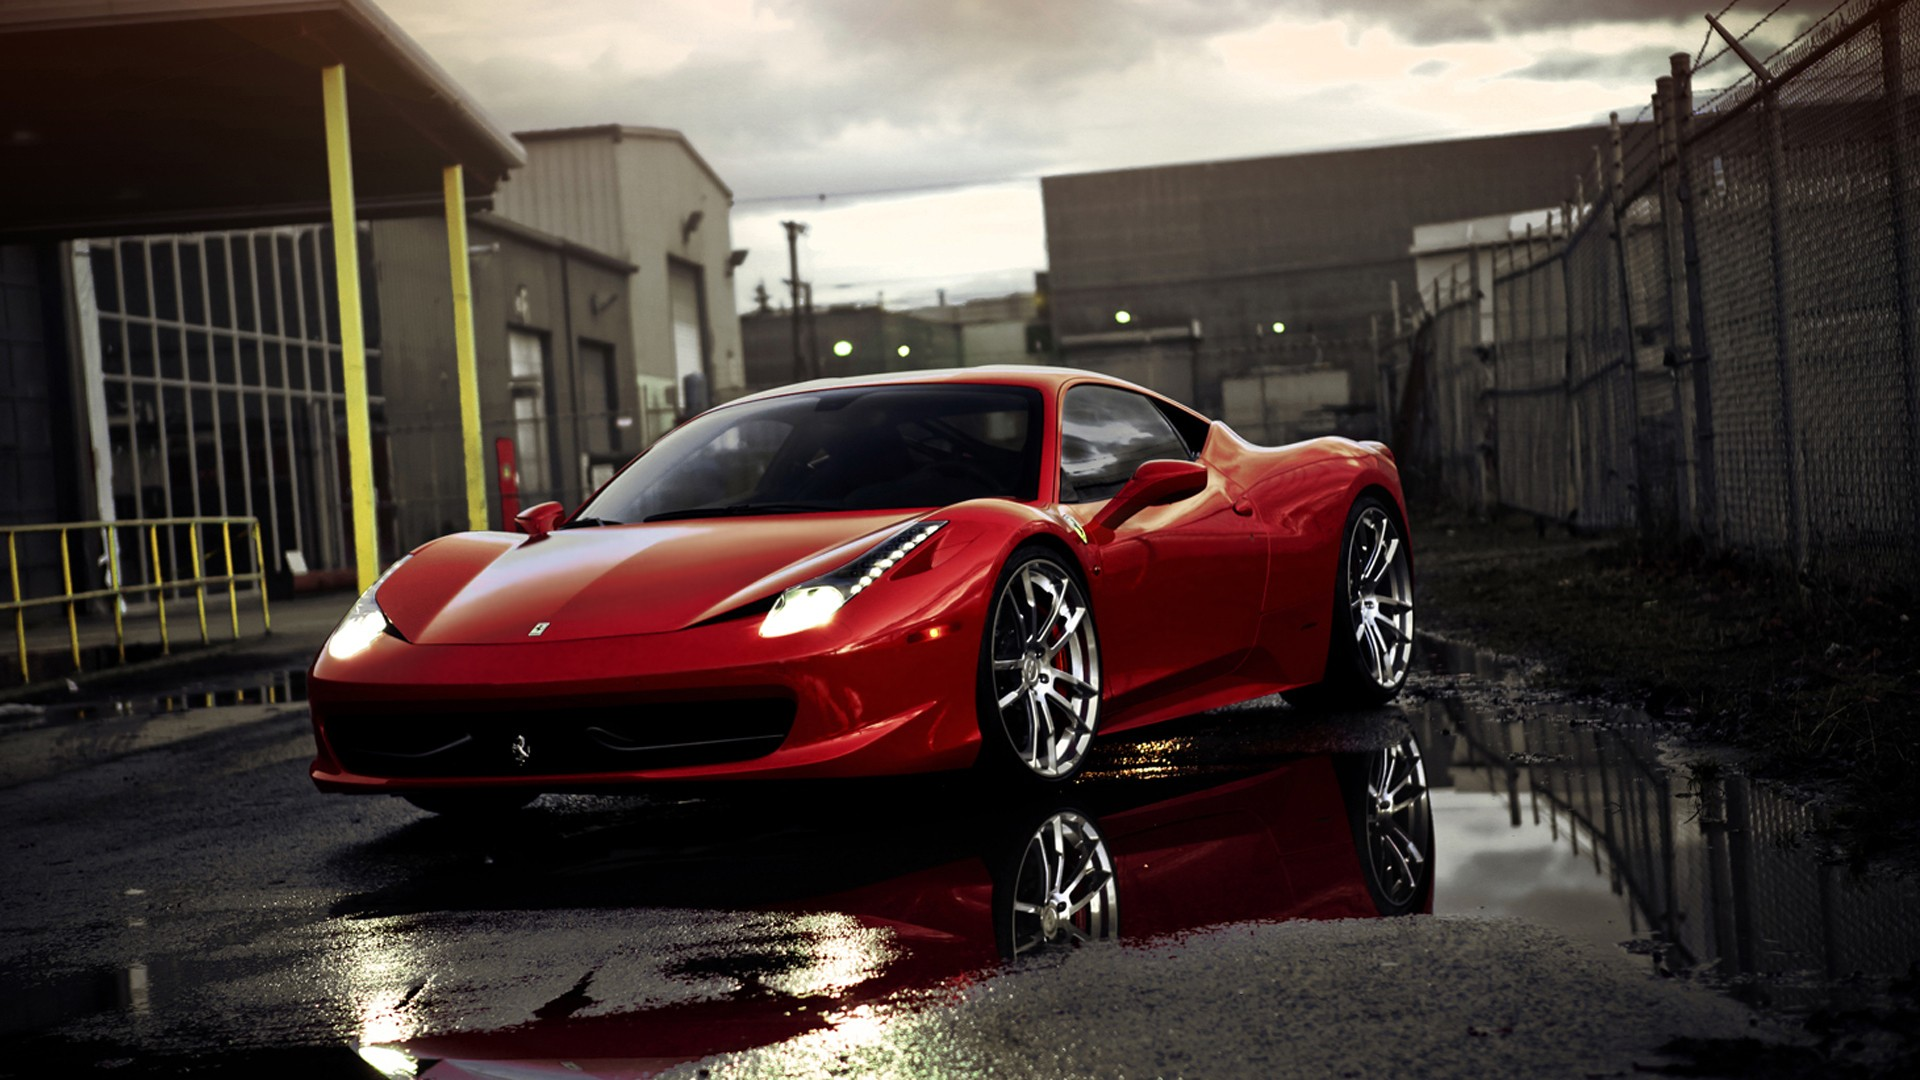 download image ferrari wallpapers - photo #5